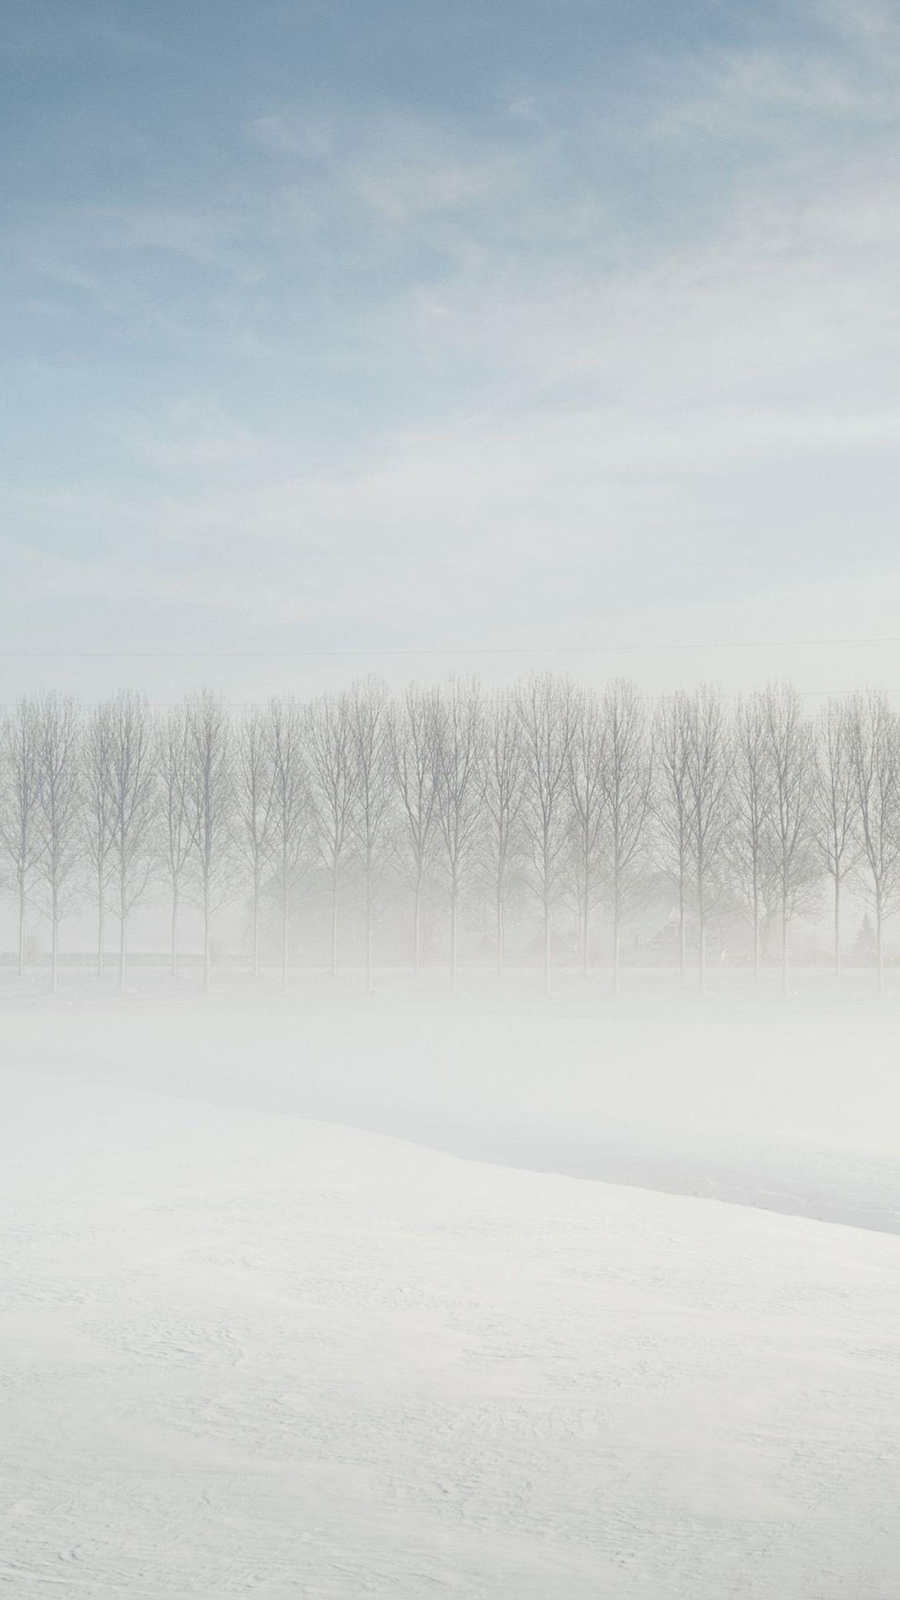 Foggy Forest Distance Snow Wallpapers Free Download For Mobile & Desktop